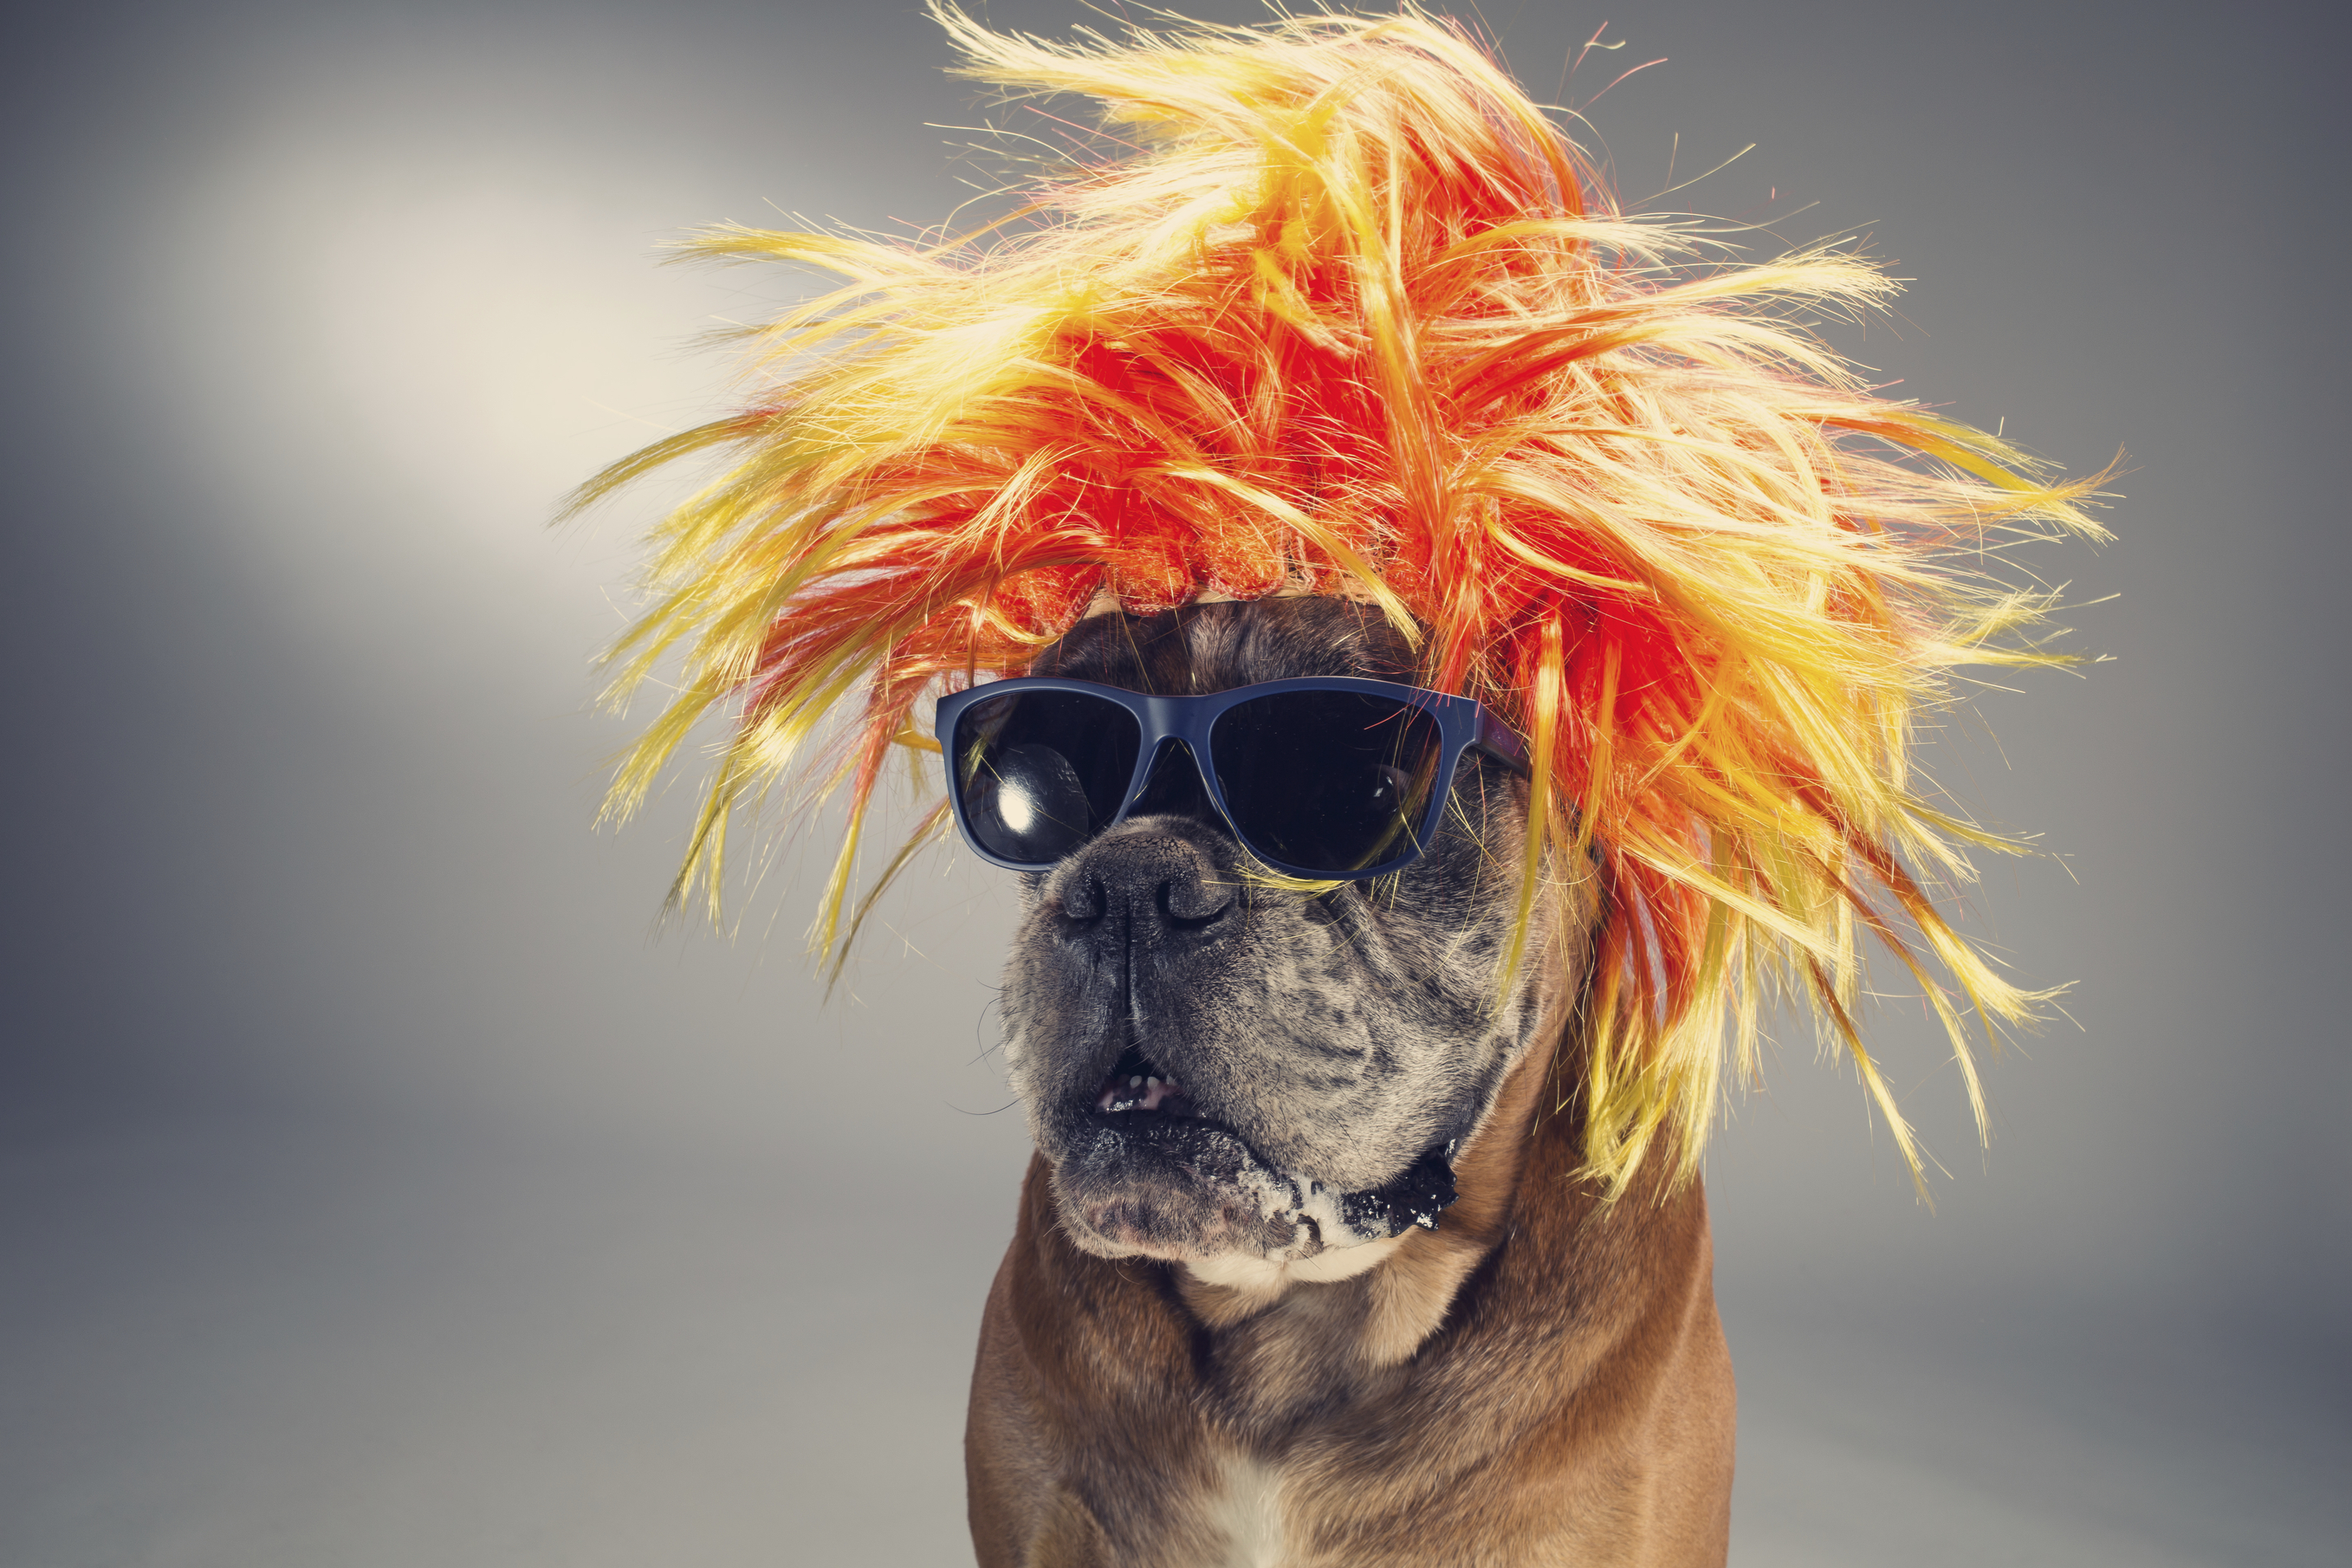 Boxer dog wearing wig and sunglasses